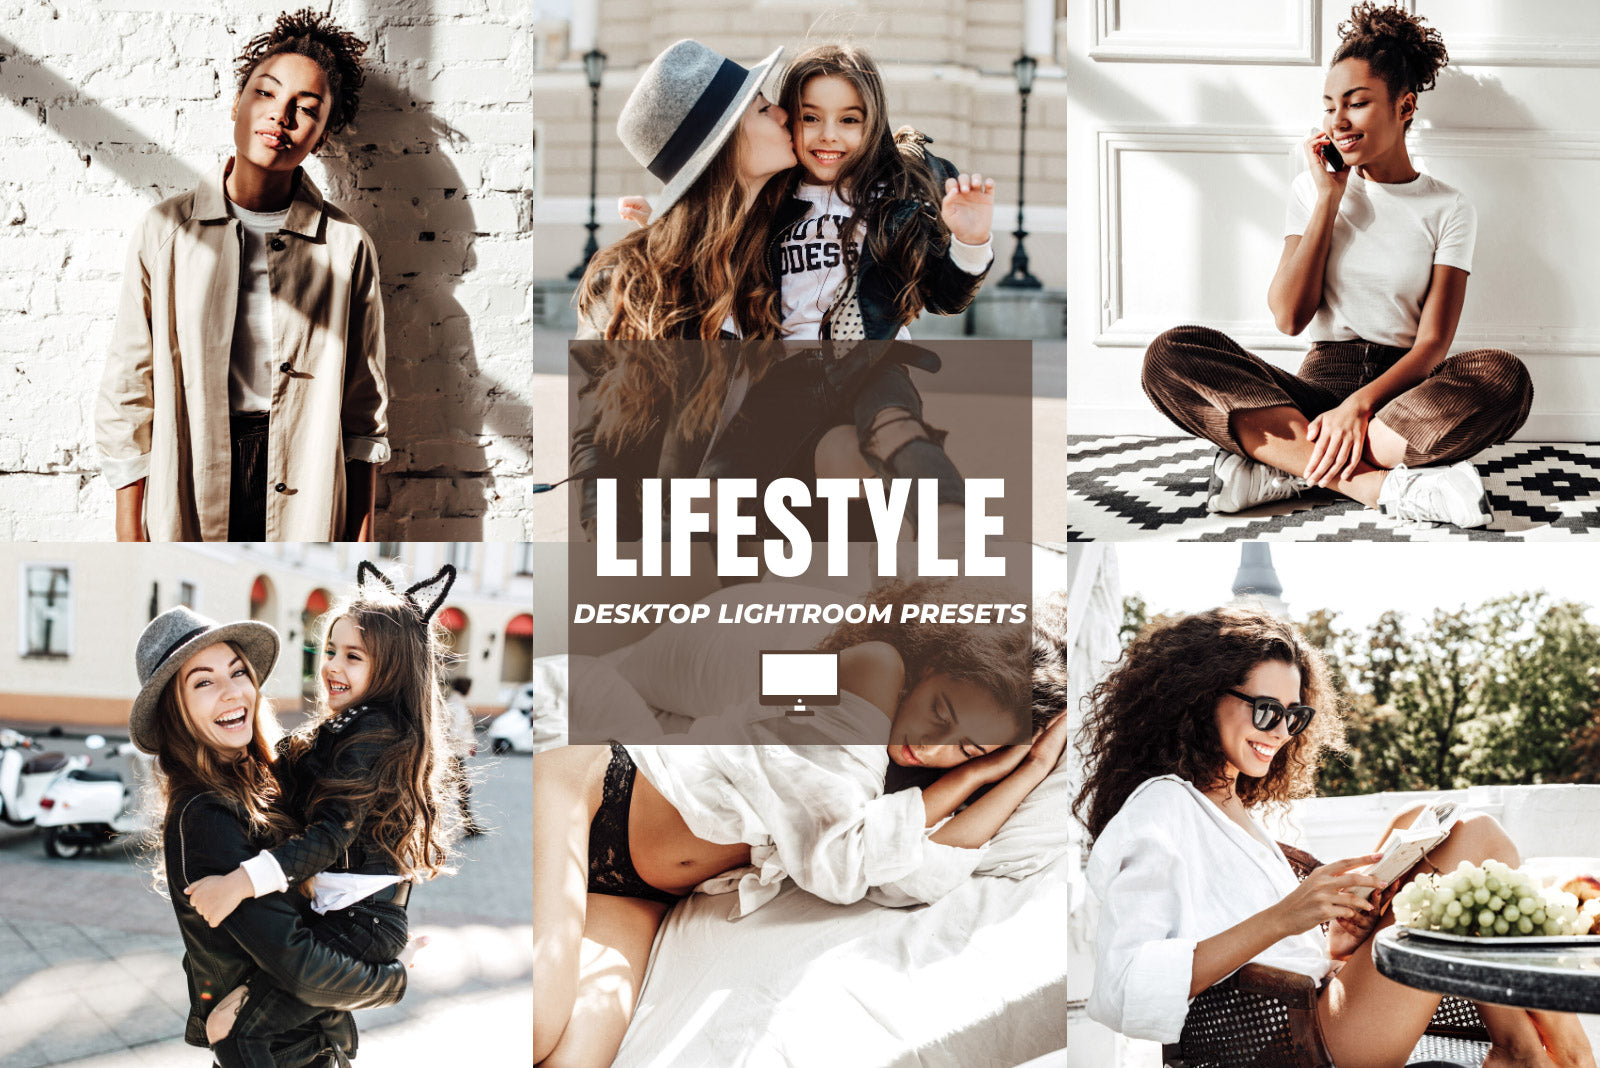 LIFESTYLE DESKTOP LIGHTROOM PRESETS by The Viral Presets